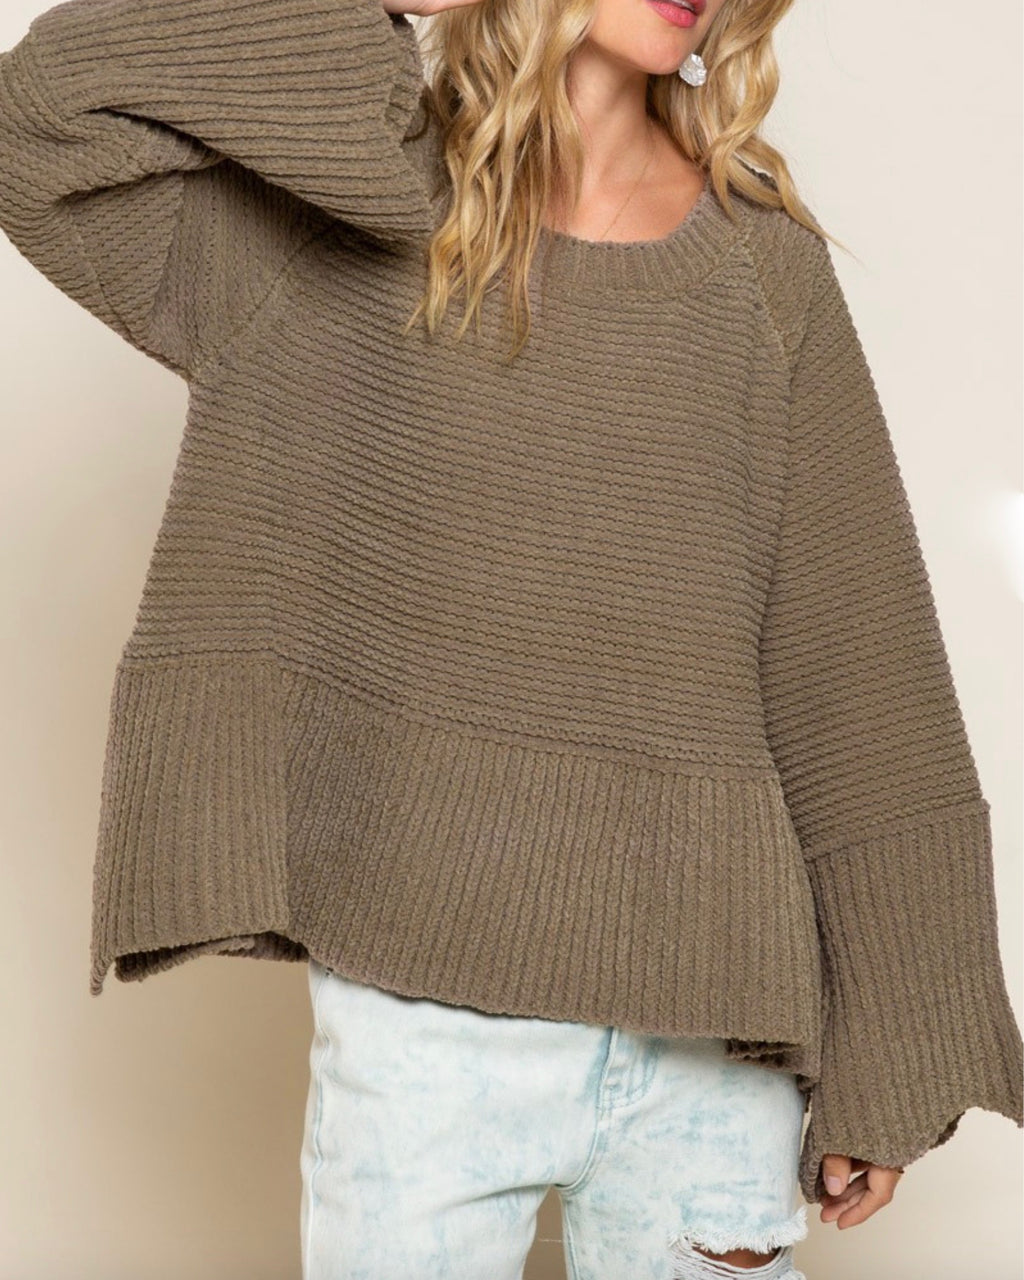 Relaxed Fit Scallop Edge Long Bell Sleeve Knit Sweater in Olive